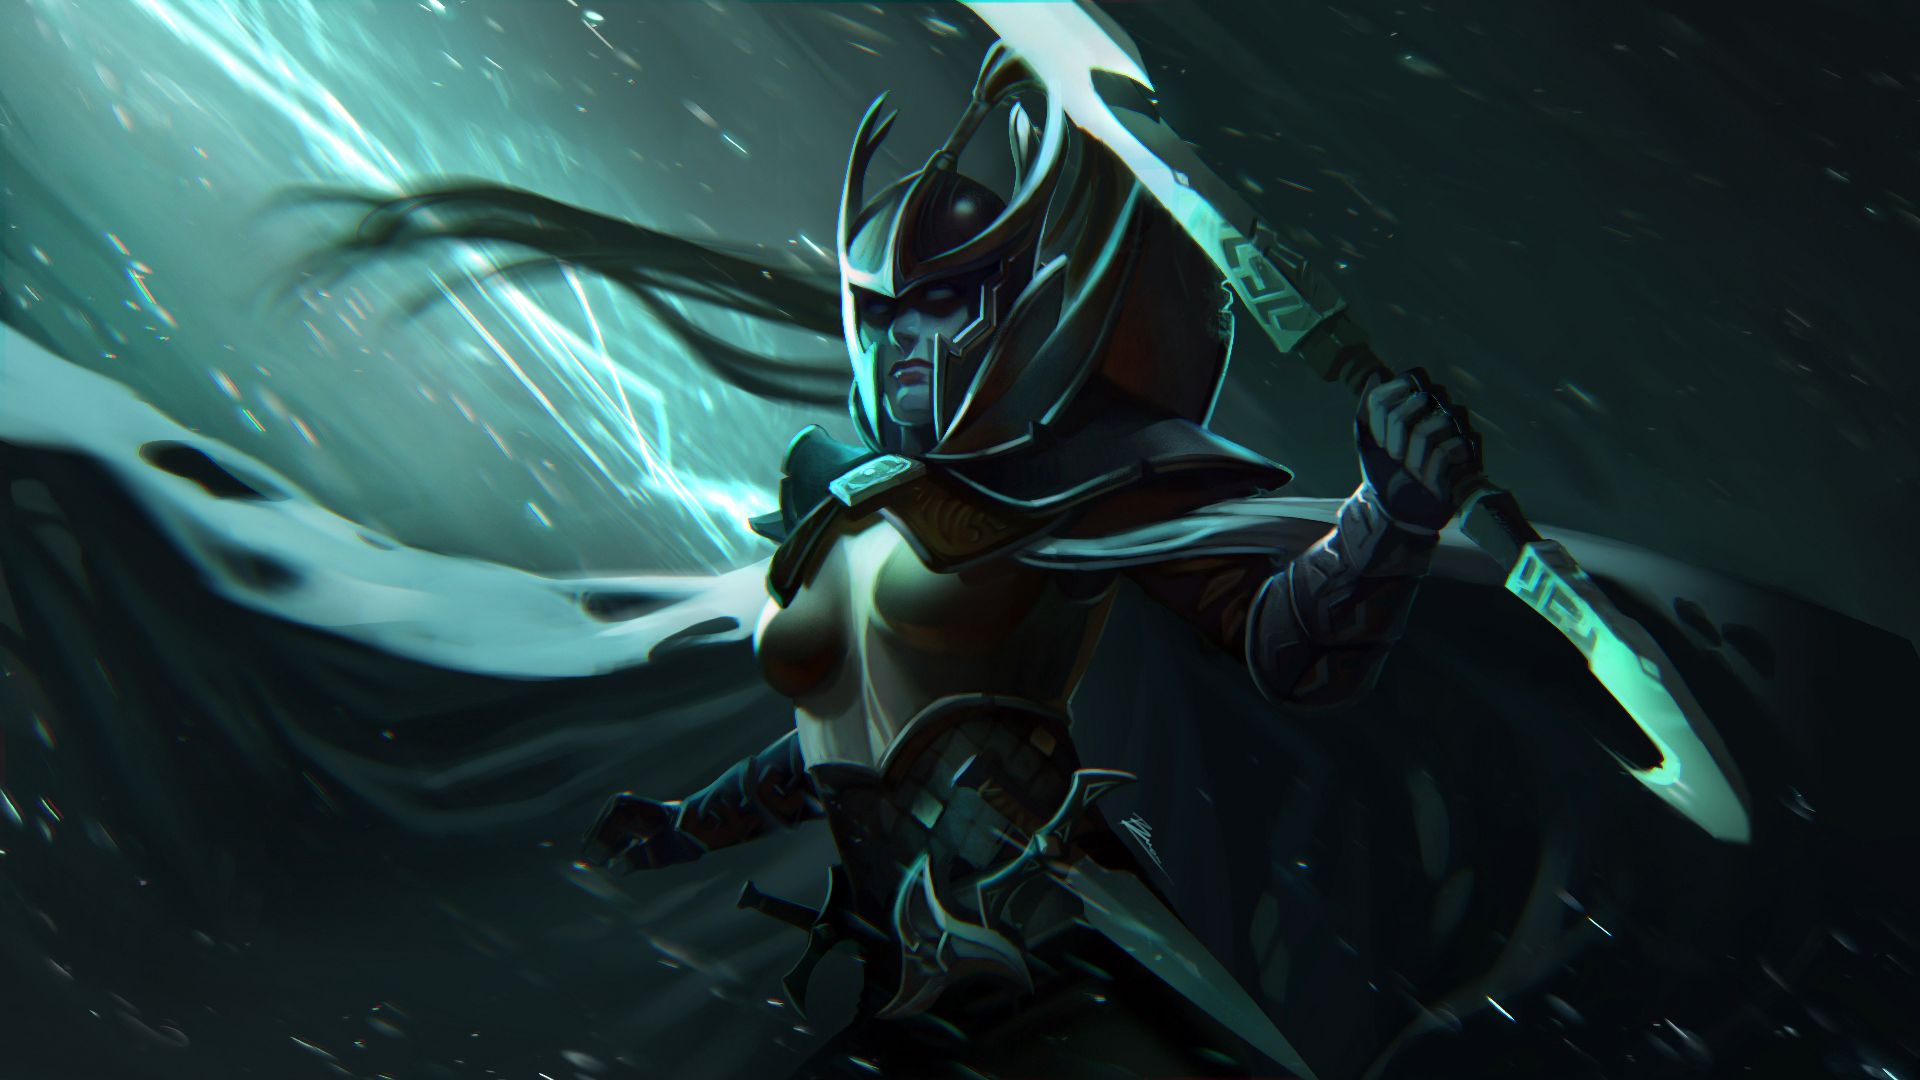 Dota 2 Phantom Assassin Wallpaper HD